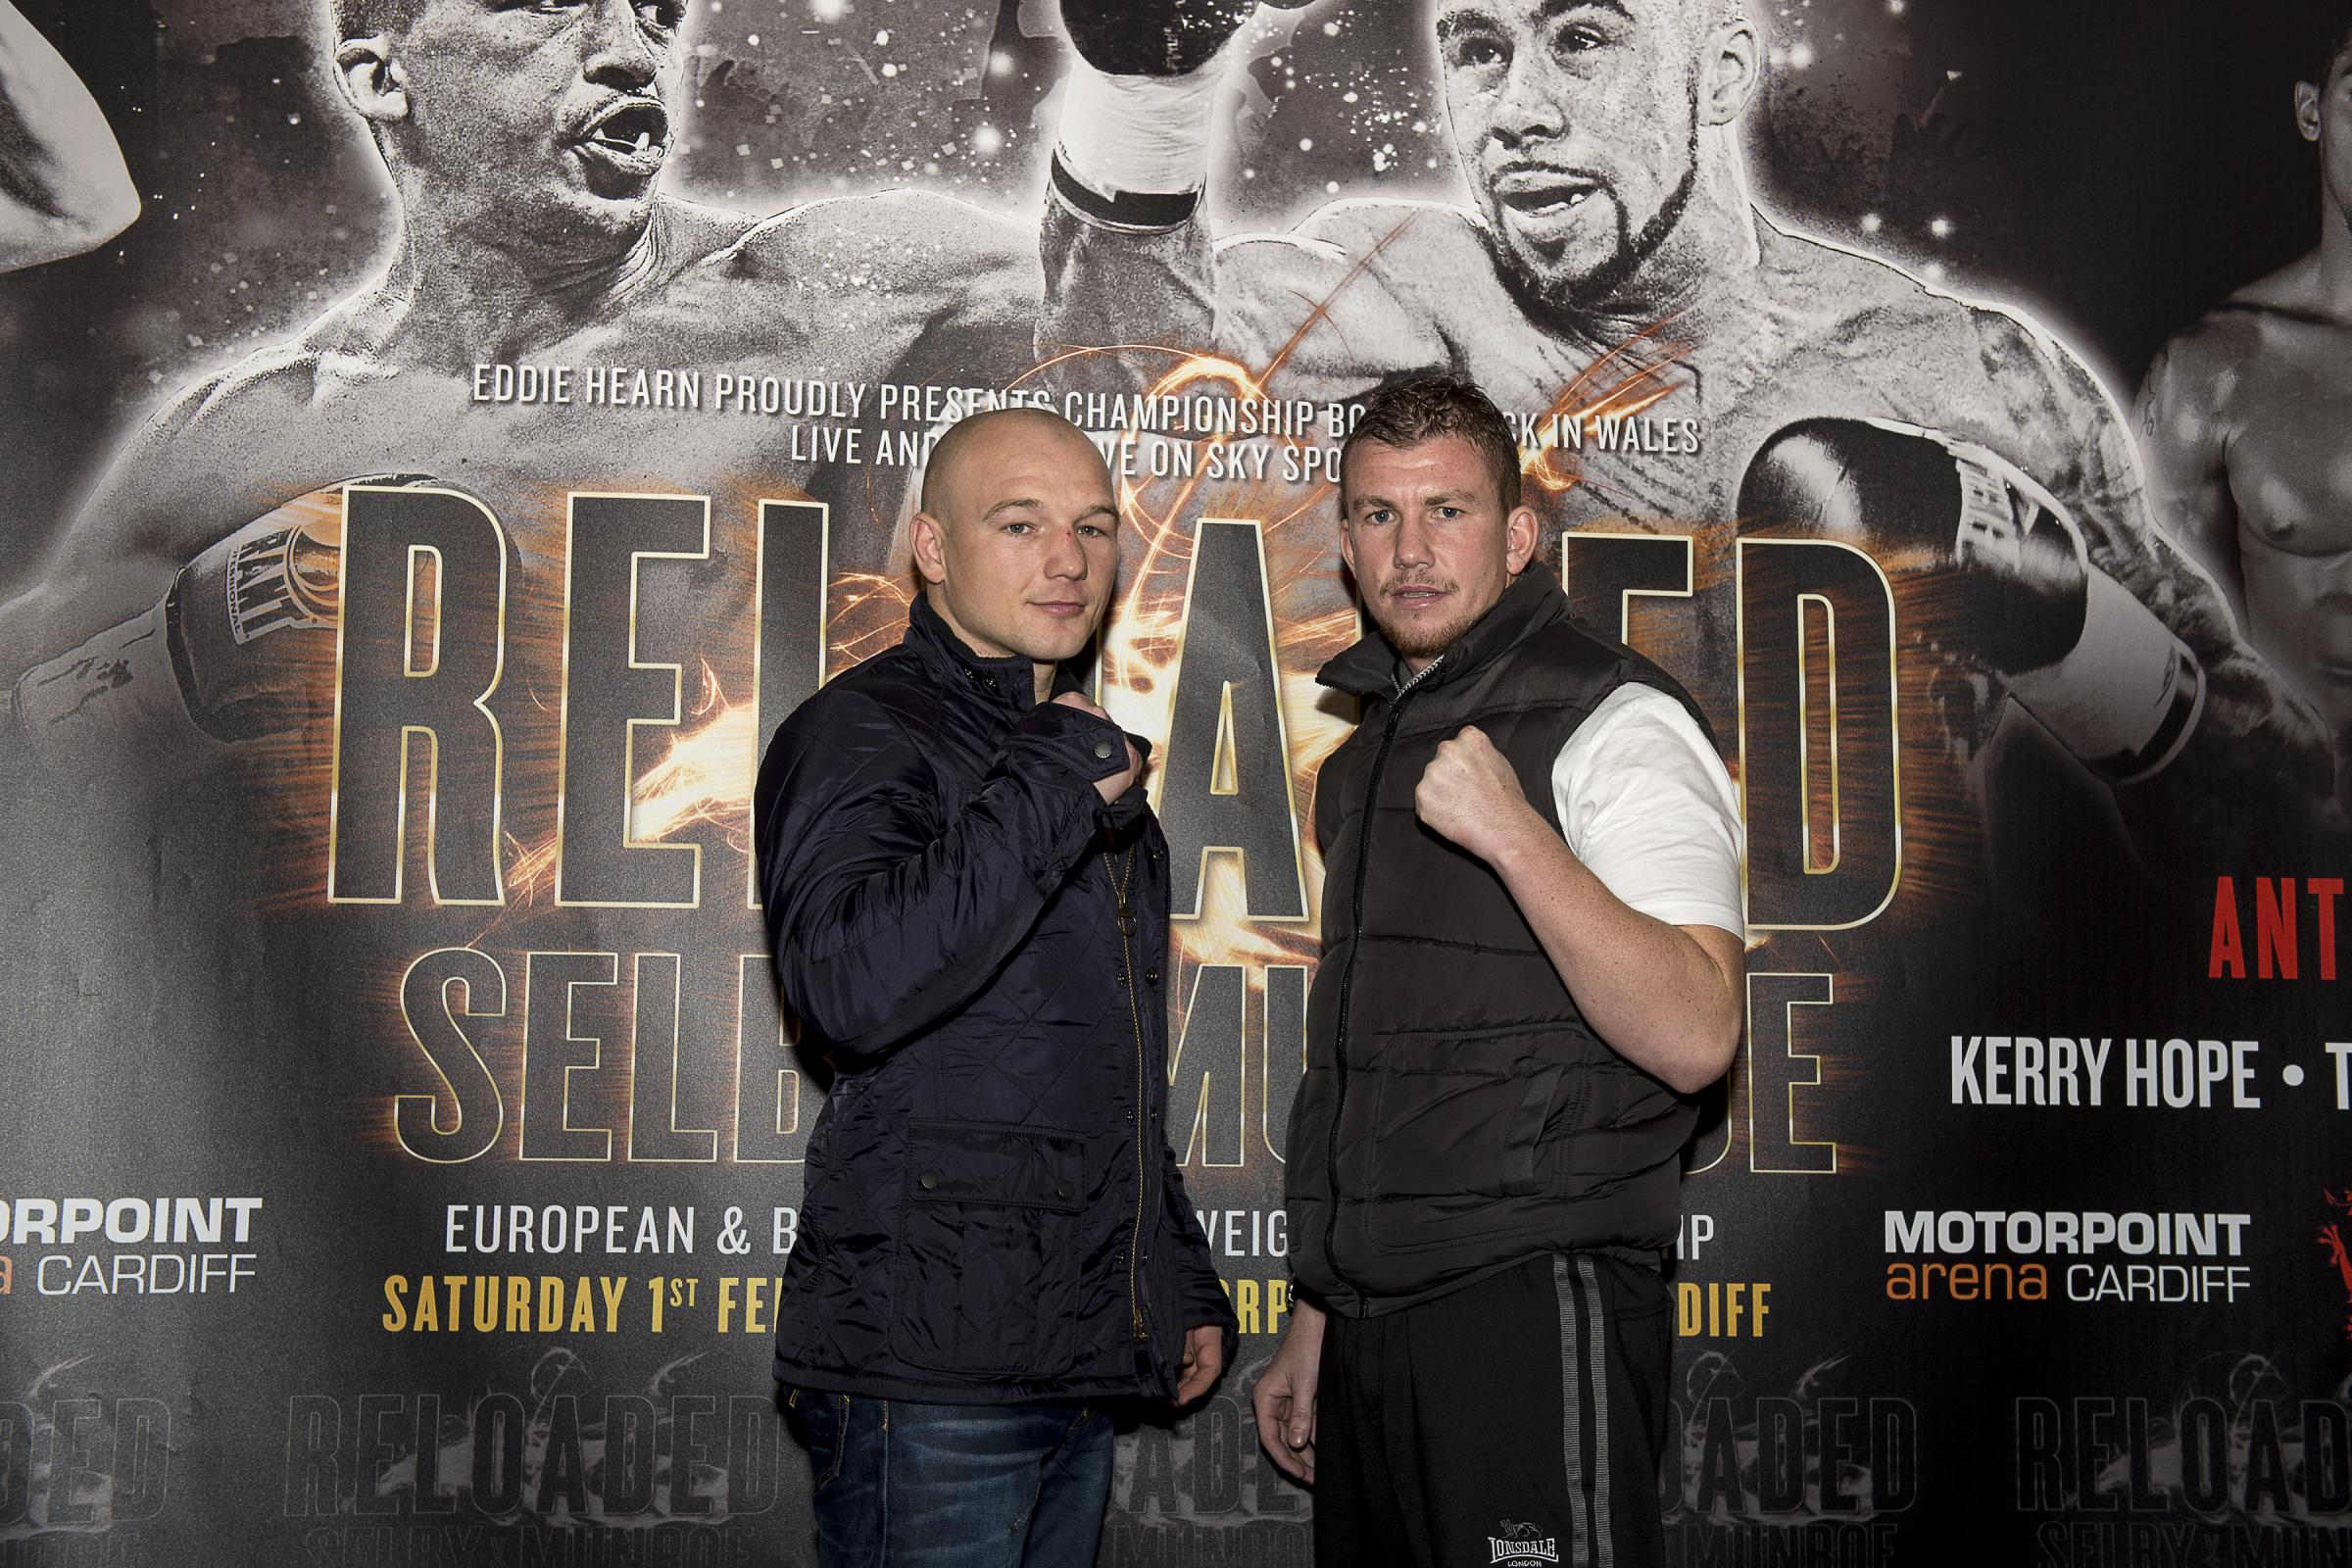 FRIENDLY RIVALS: Gavin Rees, left, and Gary Buckland will clash on February 1